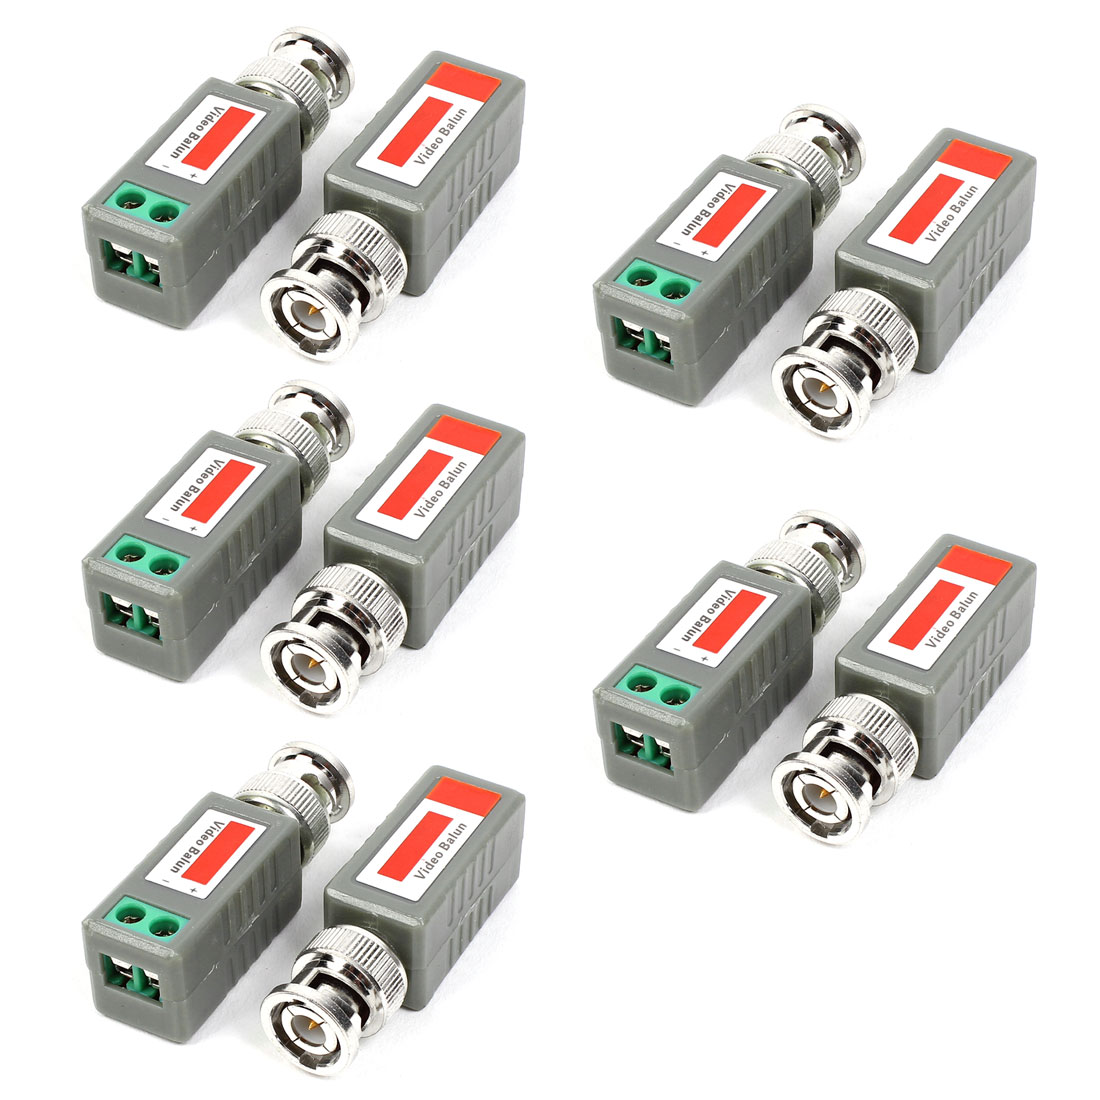 10pcs BNC Male Connector to AV Screw Terminal Adapter Video Balun Transceiver